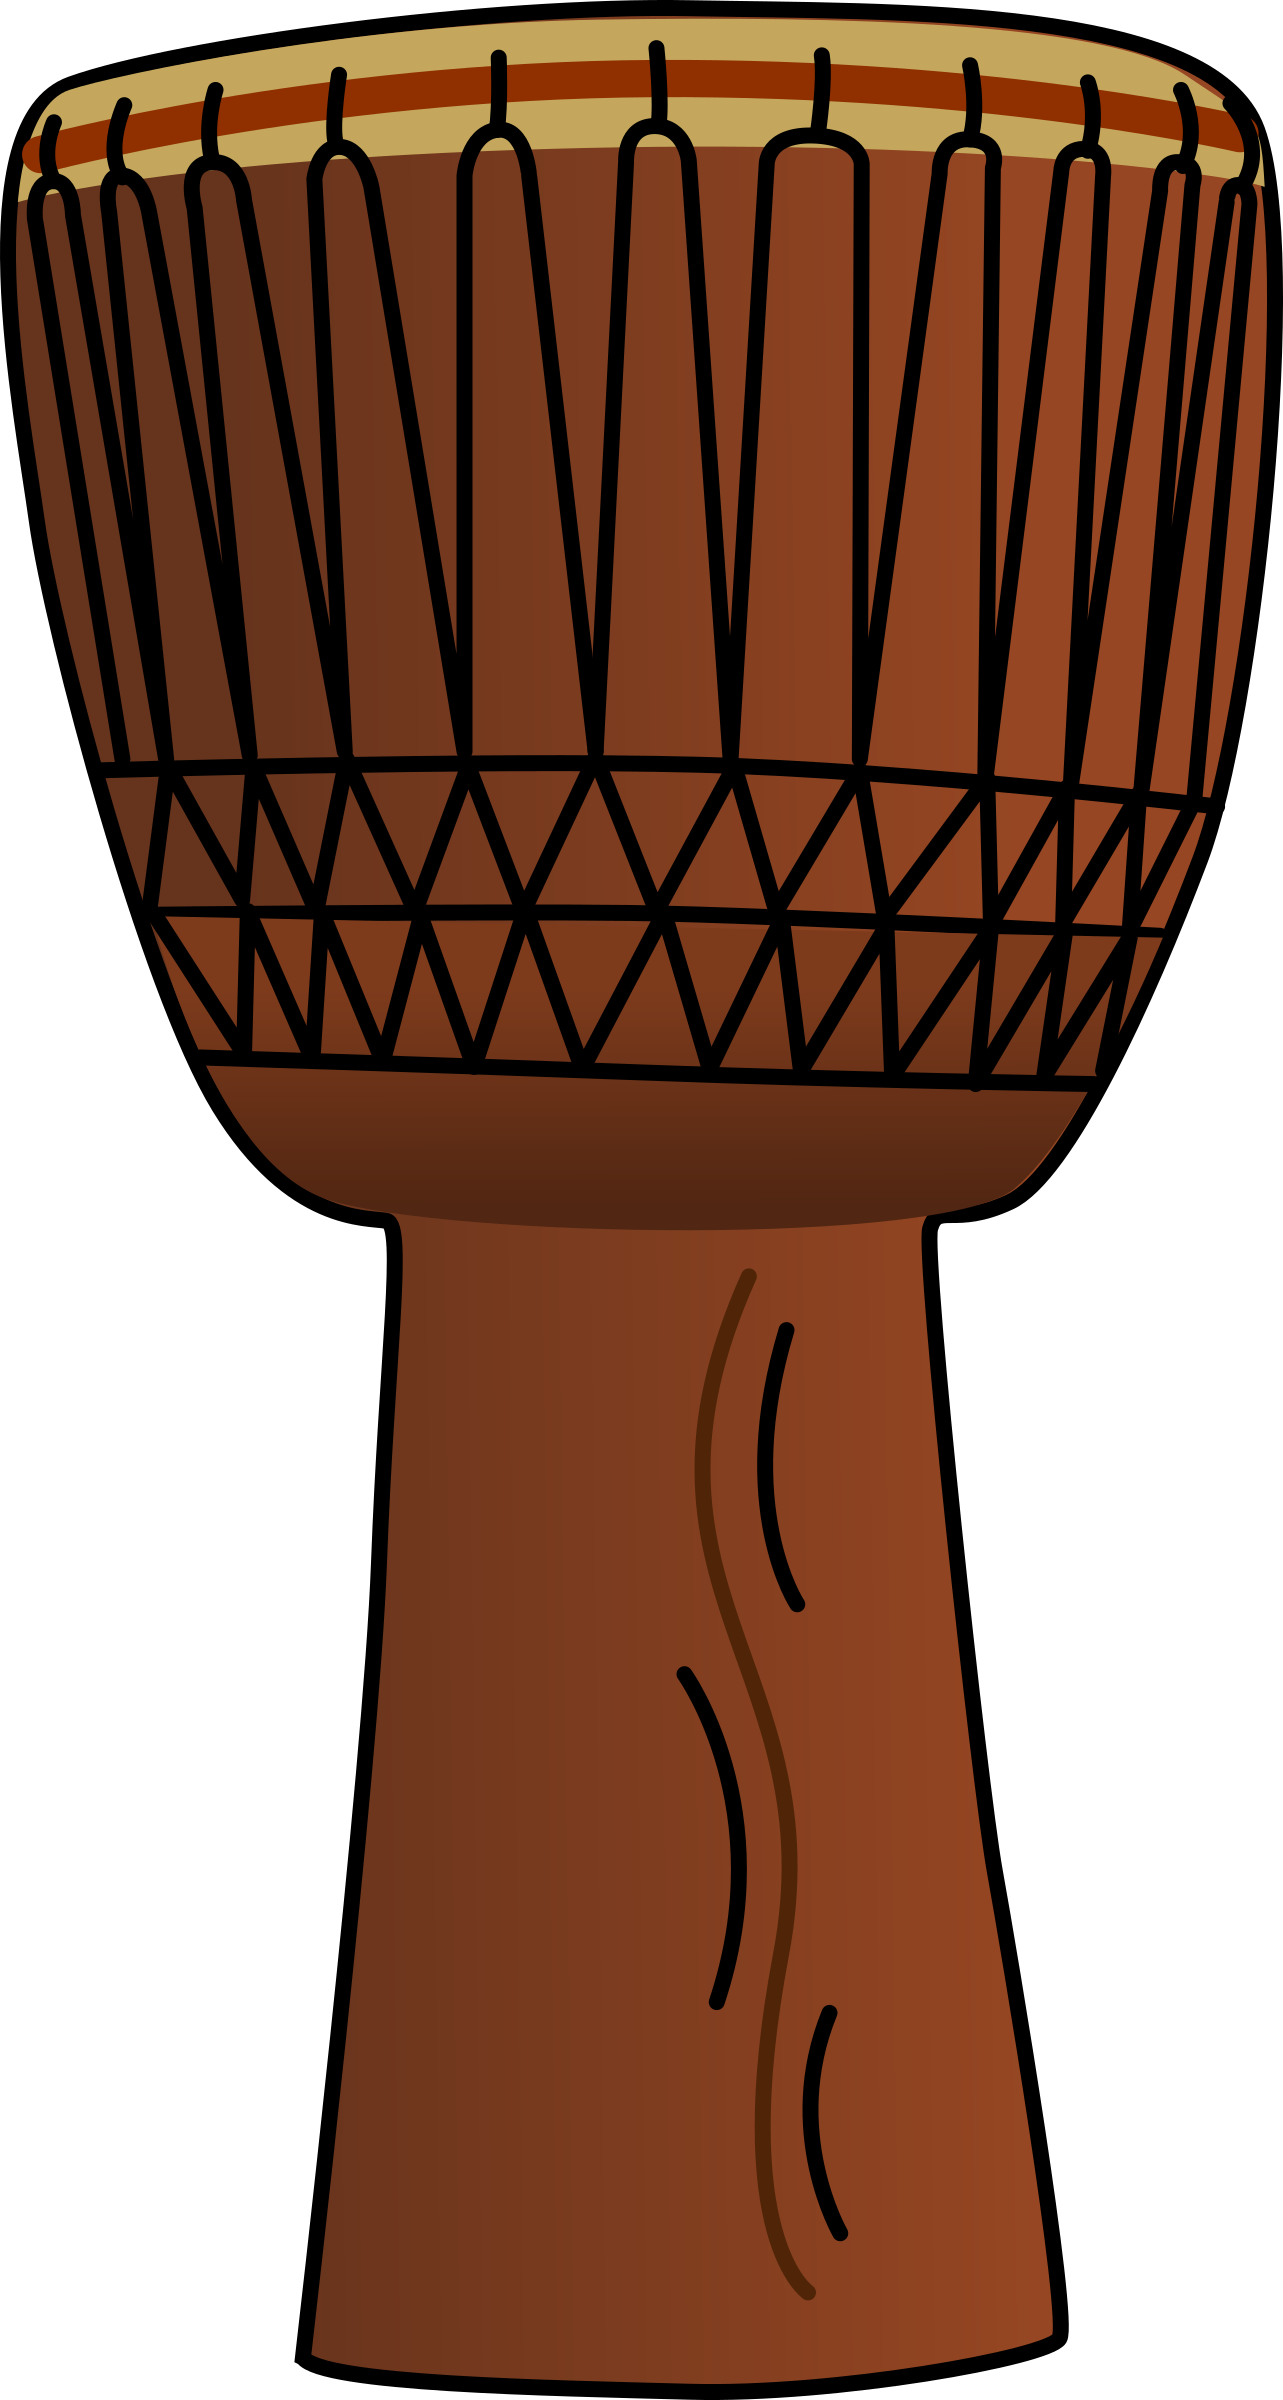 African Drum 2 by bpcomp